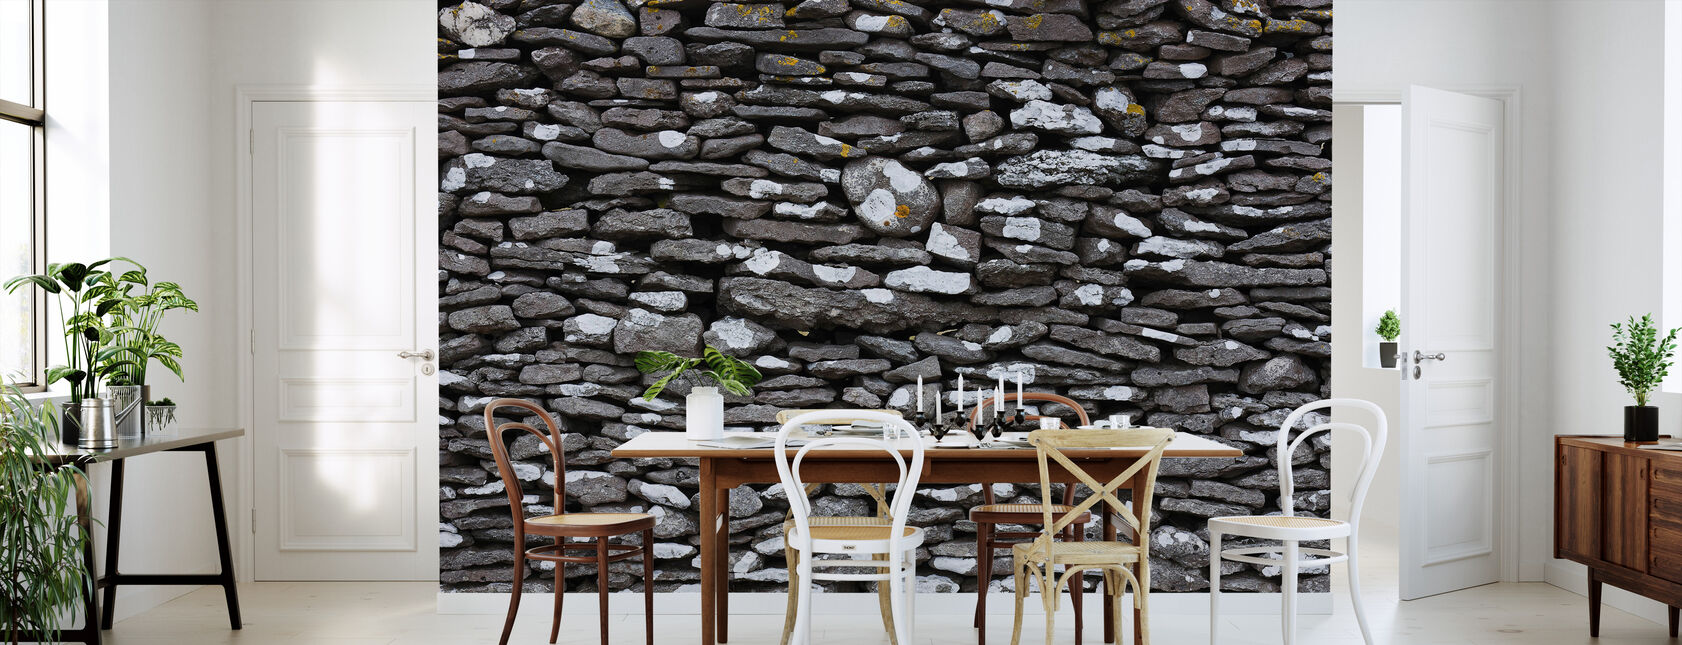 Stone Wall - Wallpaper - Kitchen